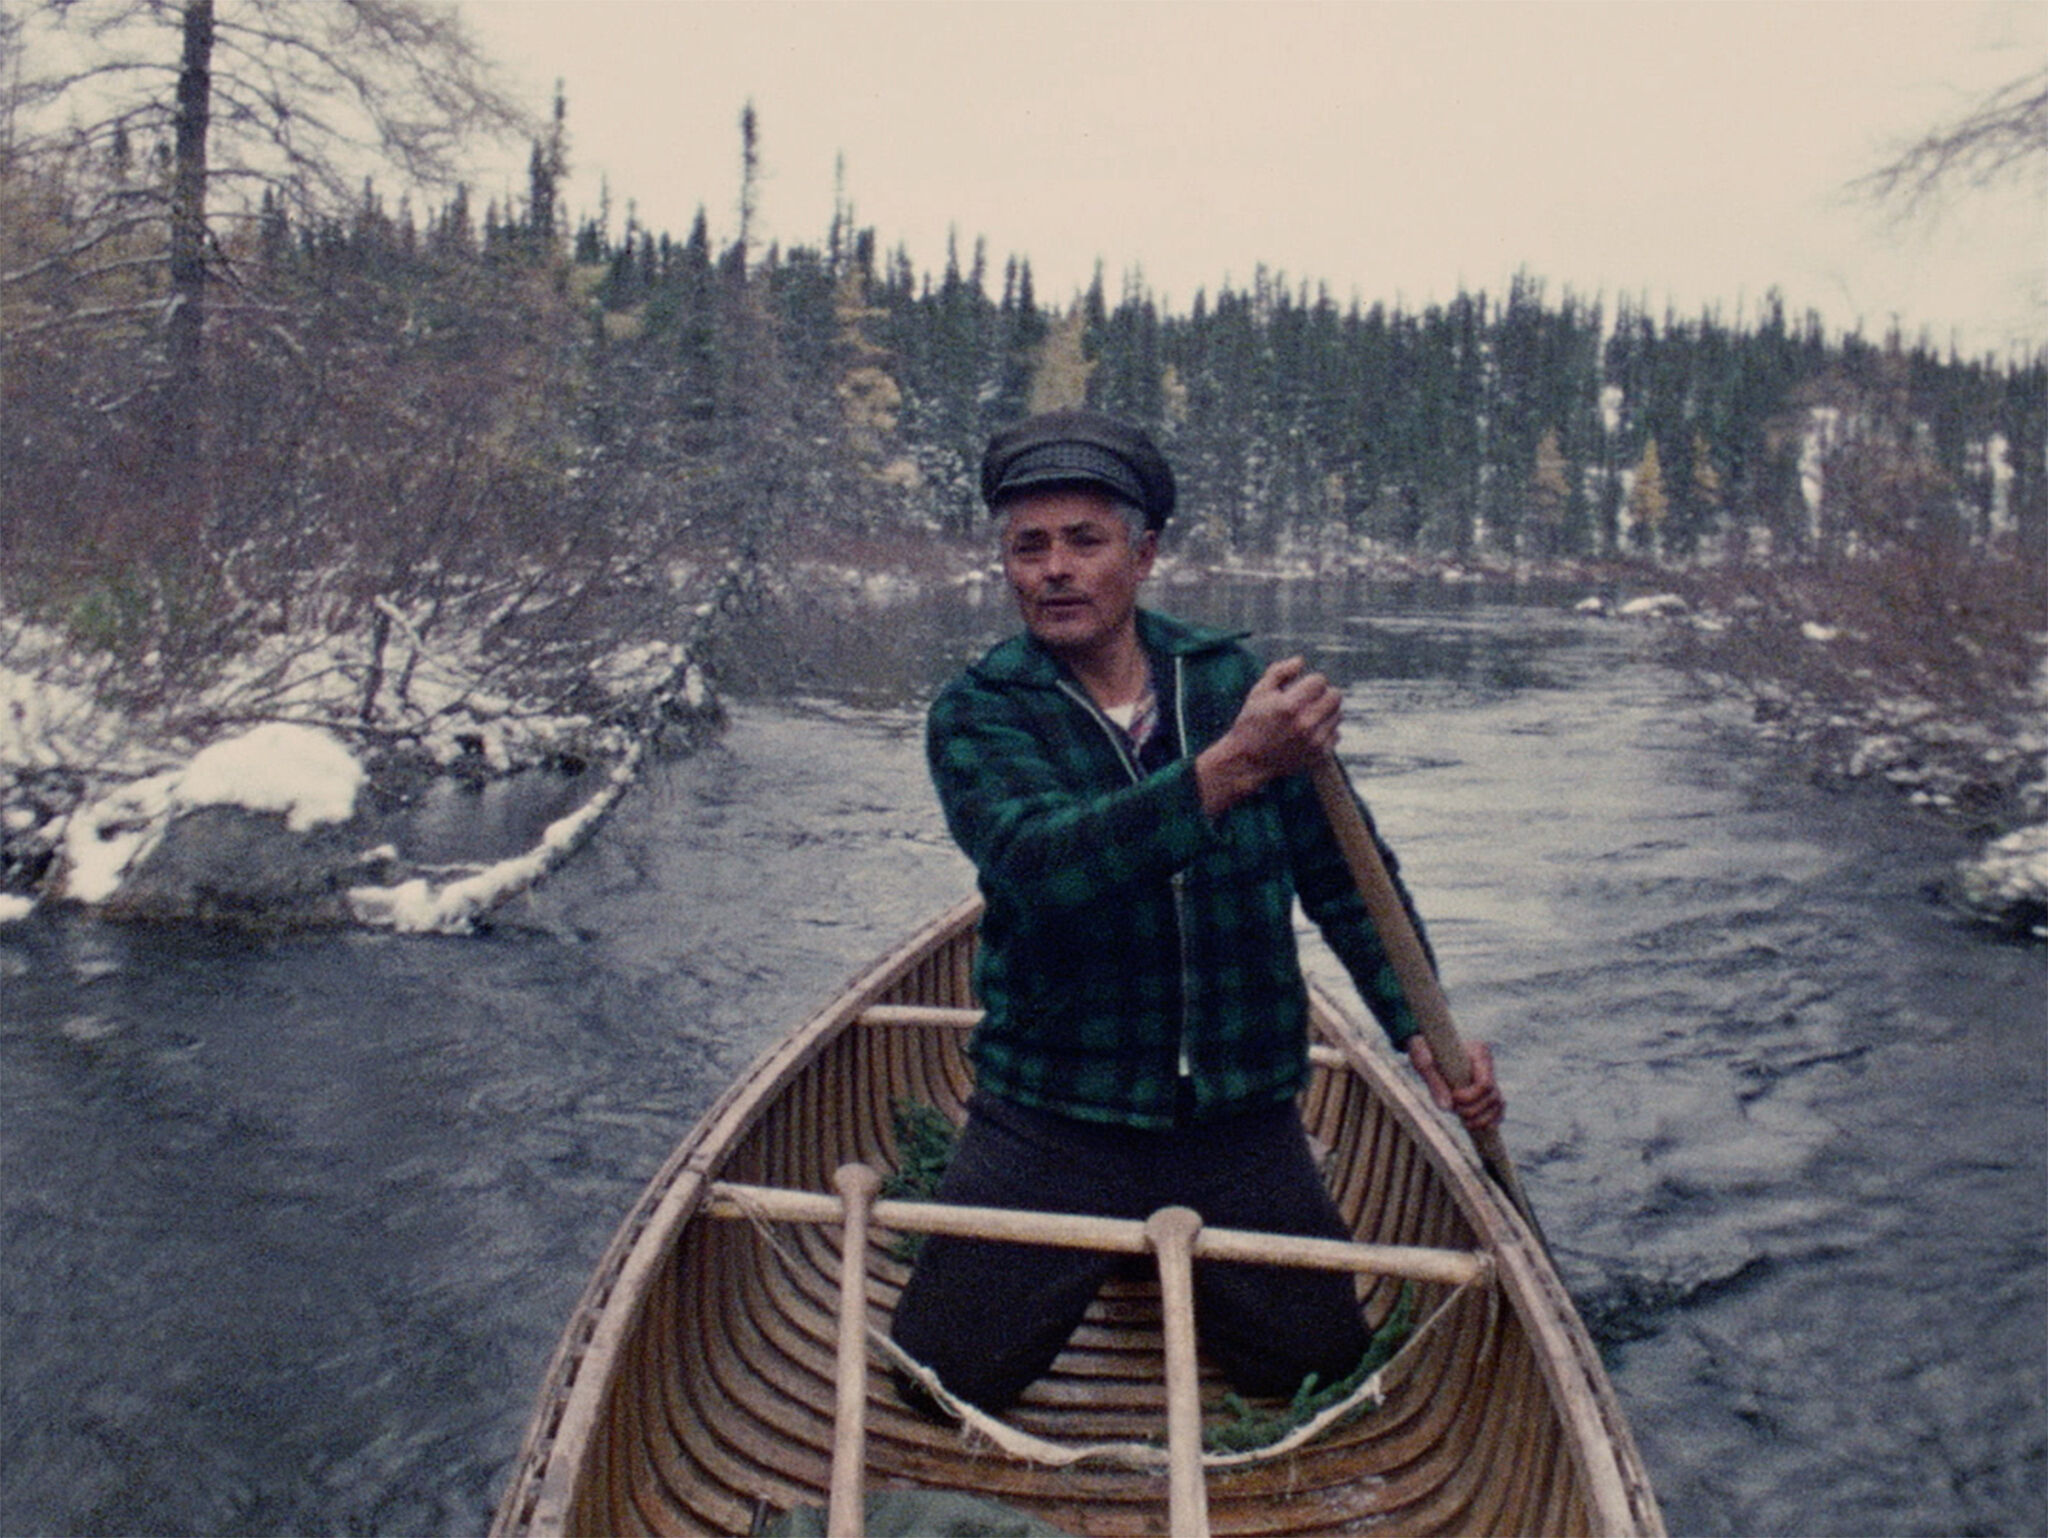 A man standing in a boat paddling.